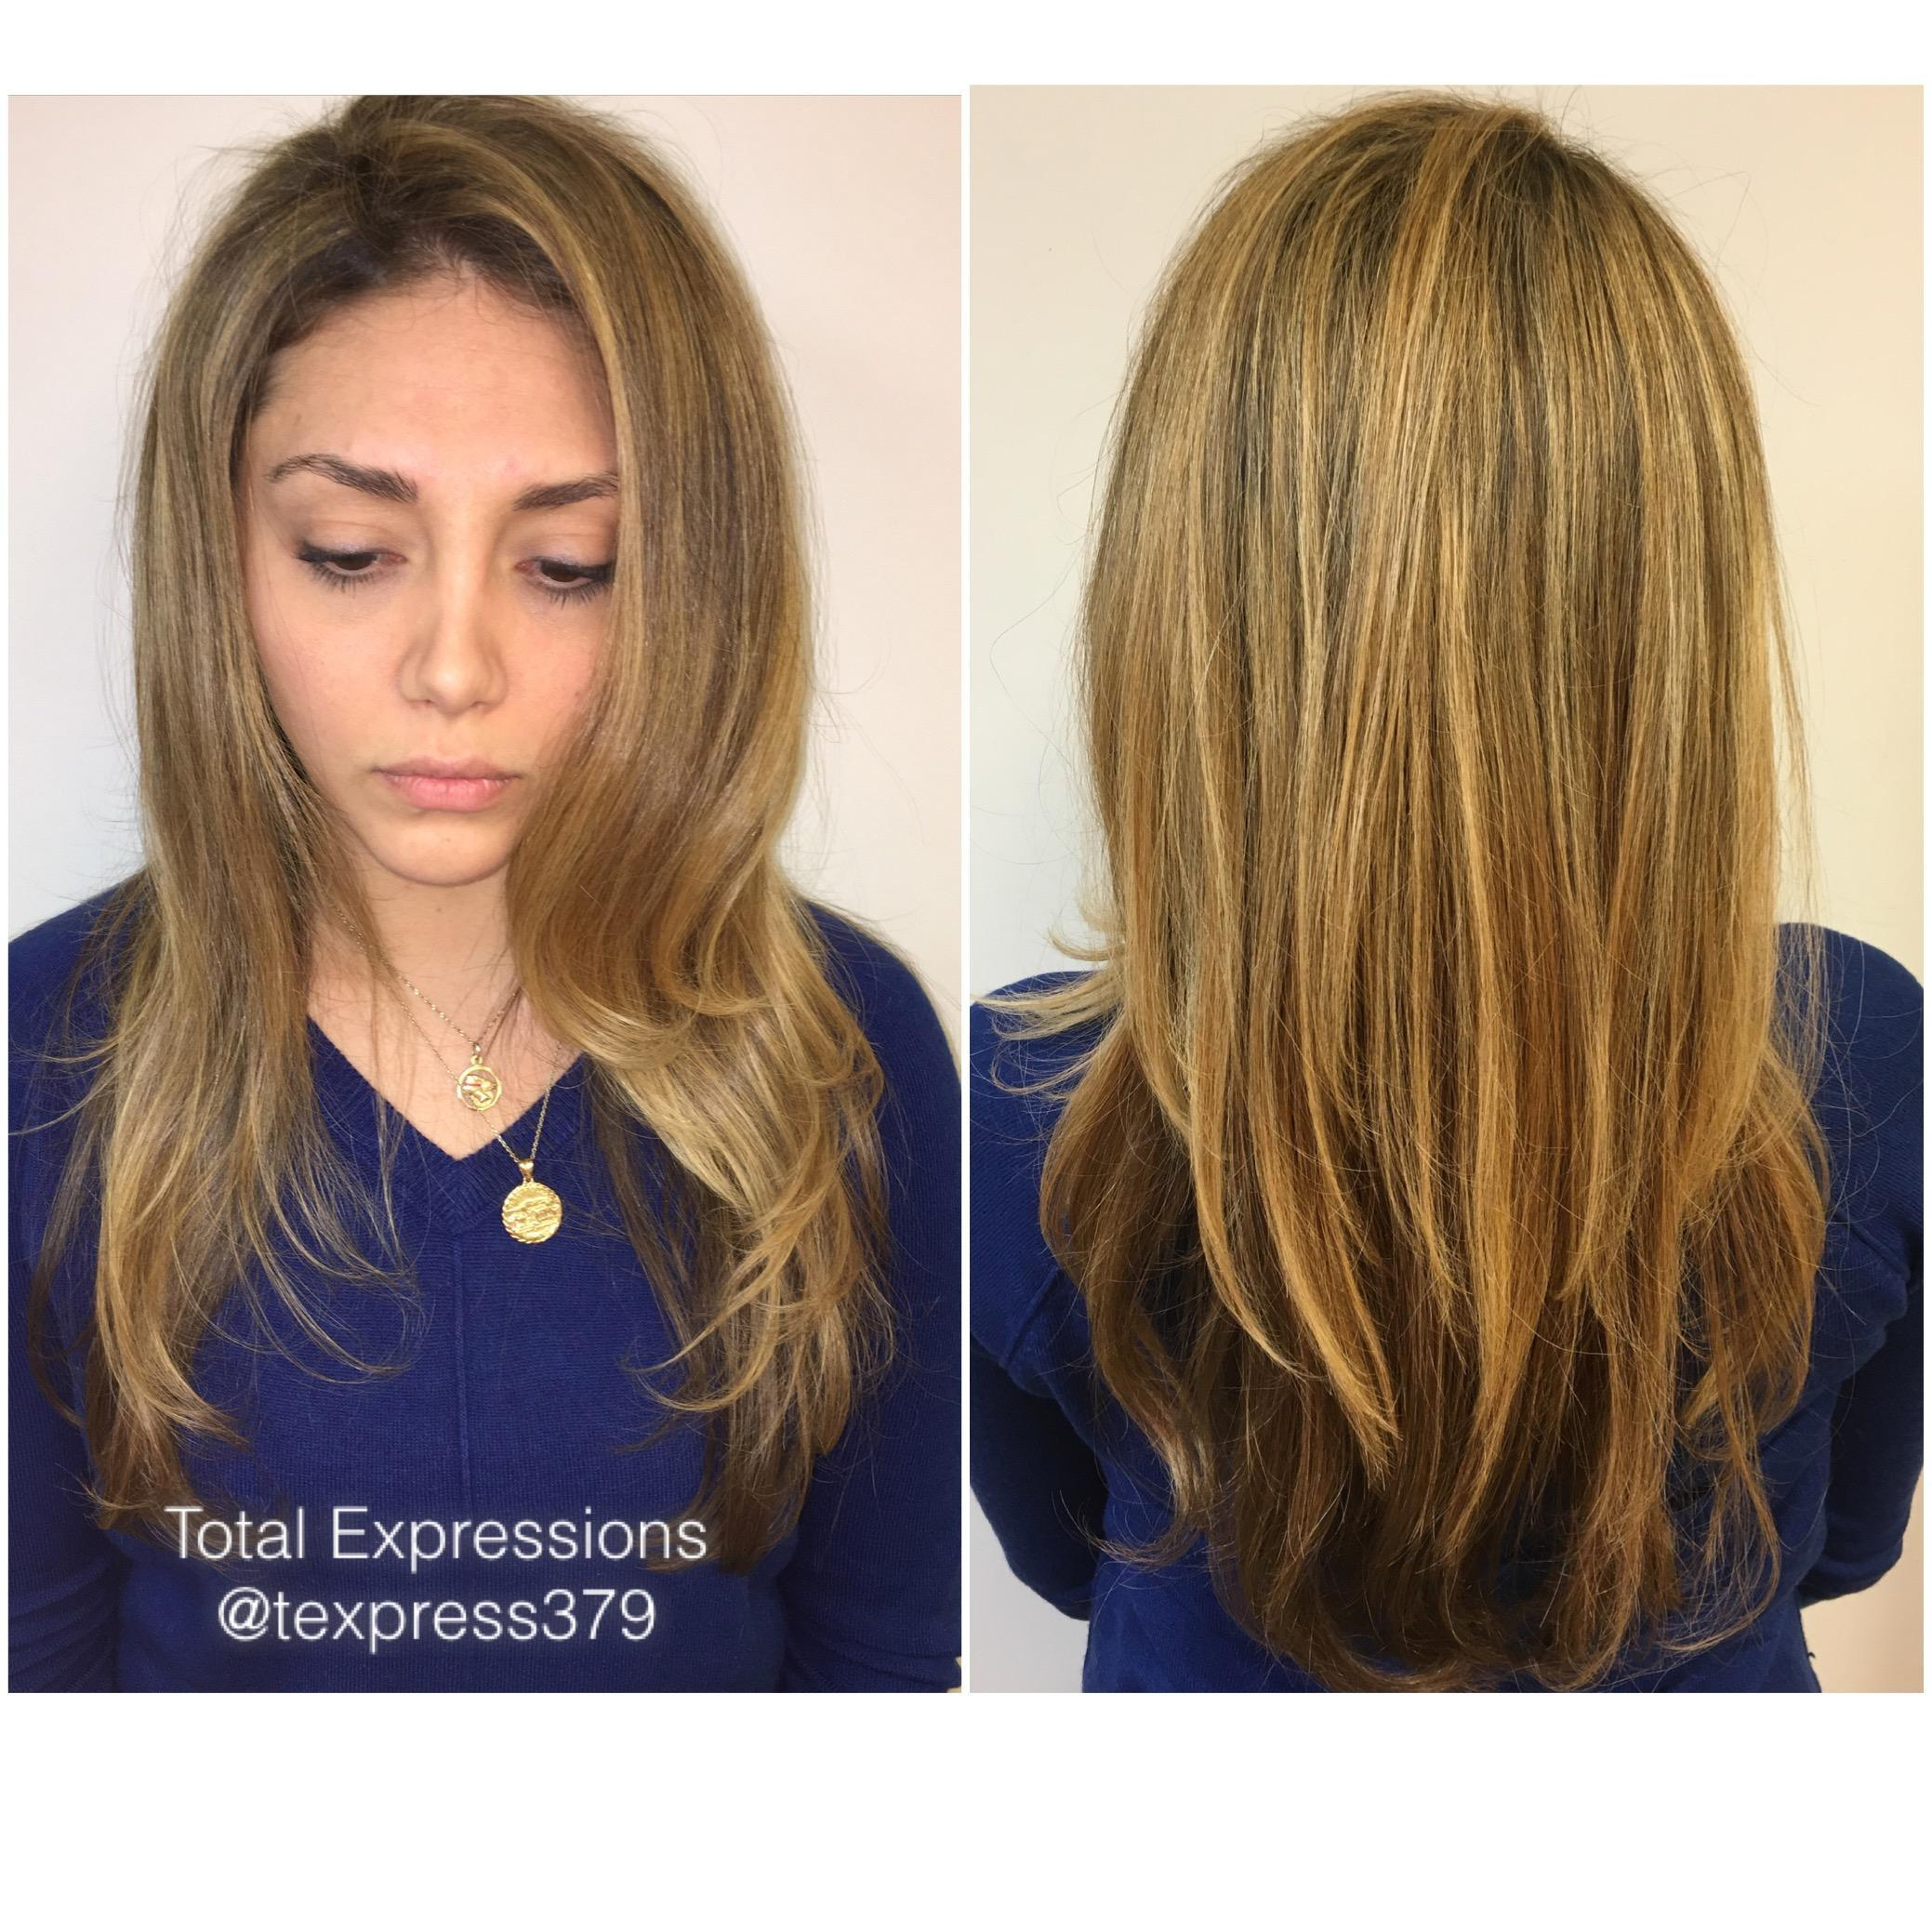 Total expressions in hair design in north arlington nj - Expressions hair salon ...